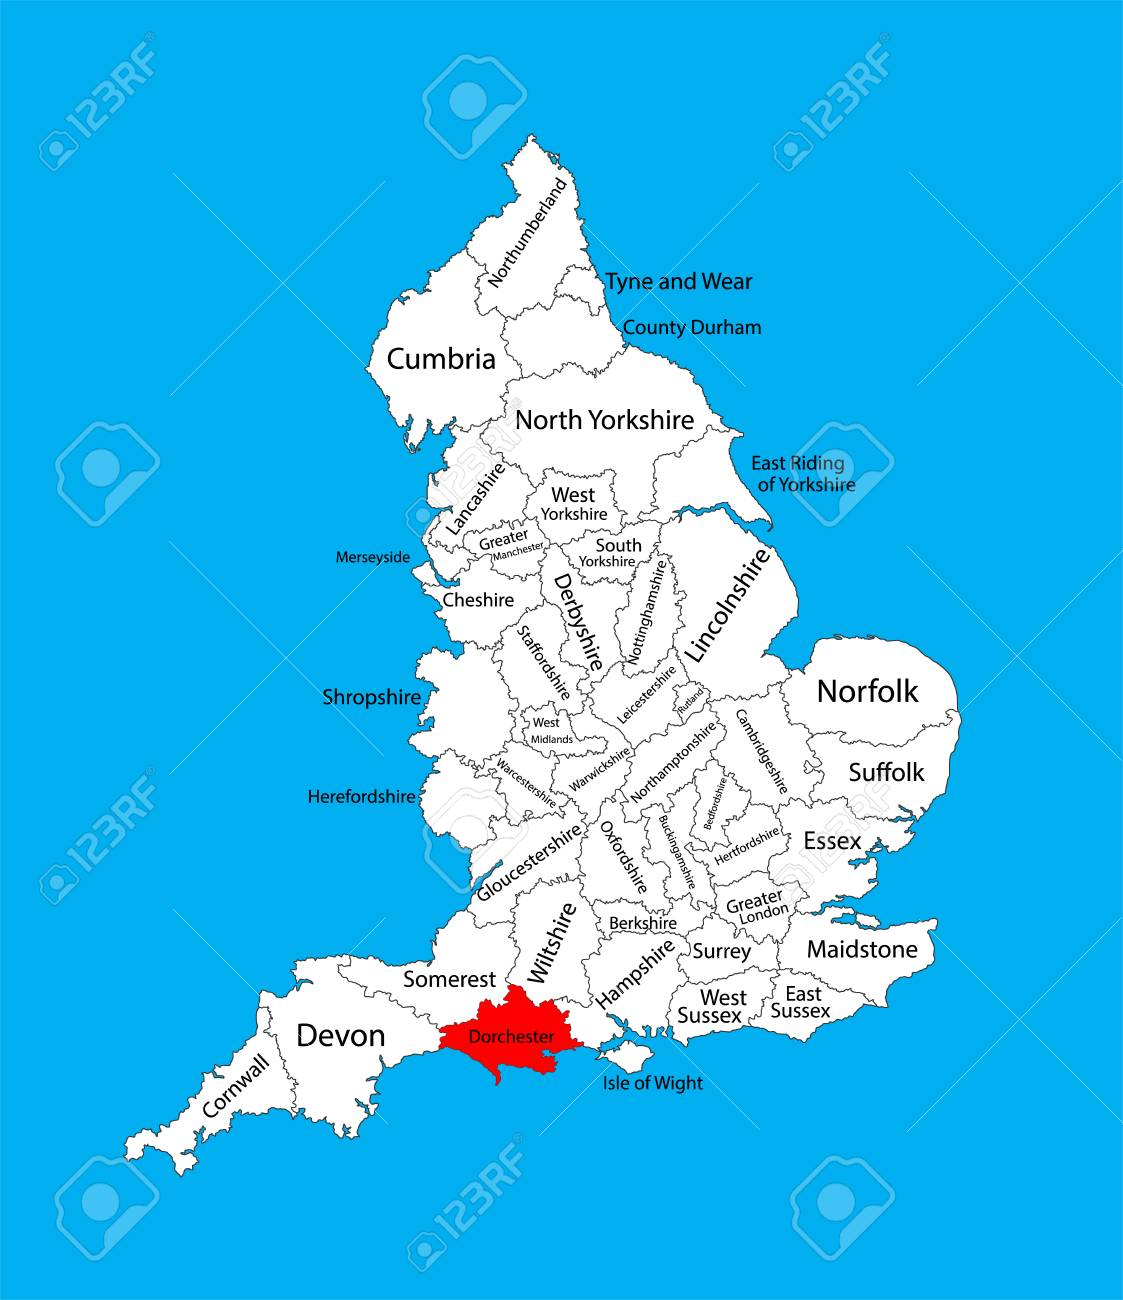 Map Of West Of England.Vector Map Of Dorset In South West England United Kingdom With